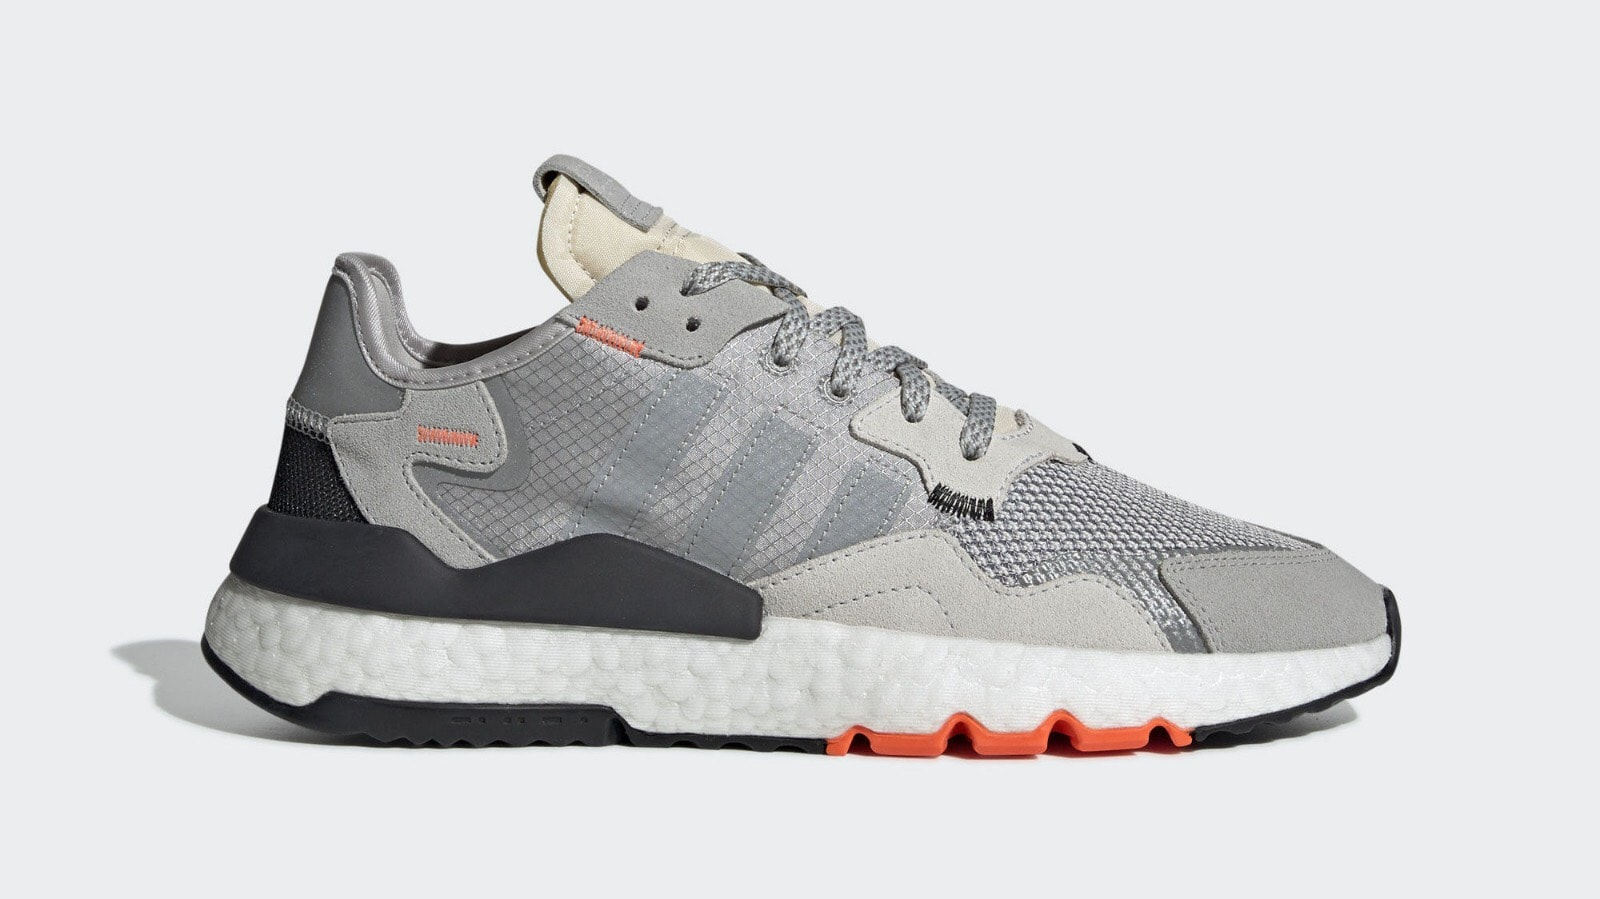 reputable site d30de 7d0d3 adidas Nite Jogger Release Date  April 11th, 2019. Price   130. Color   Grey Grey One Grey Two Style Code  G26315